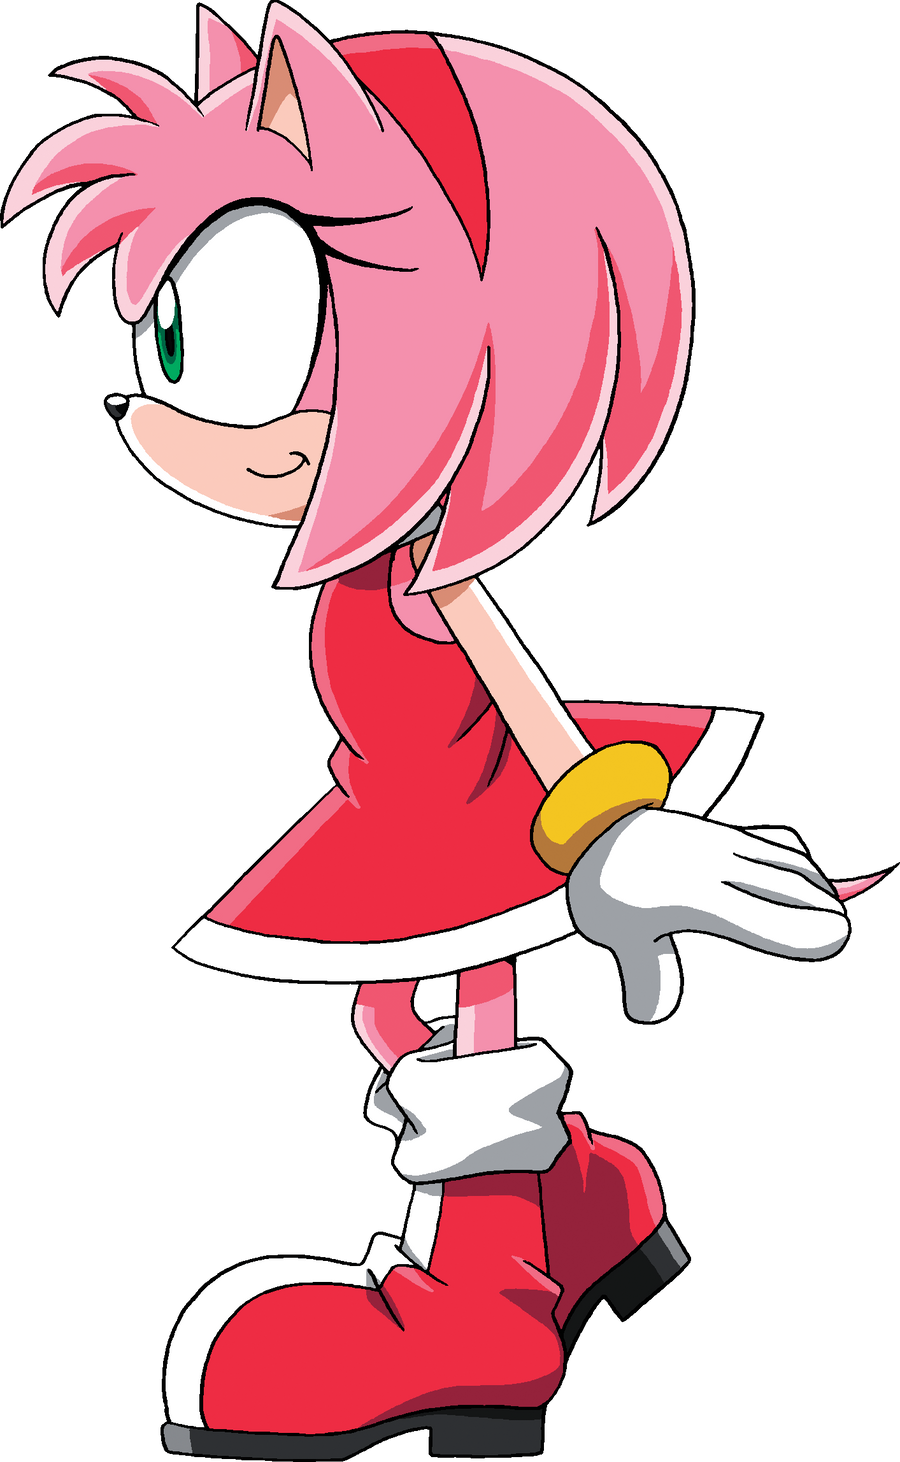 Amy rose by maddierose1 on deviantart